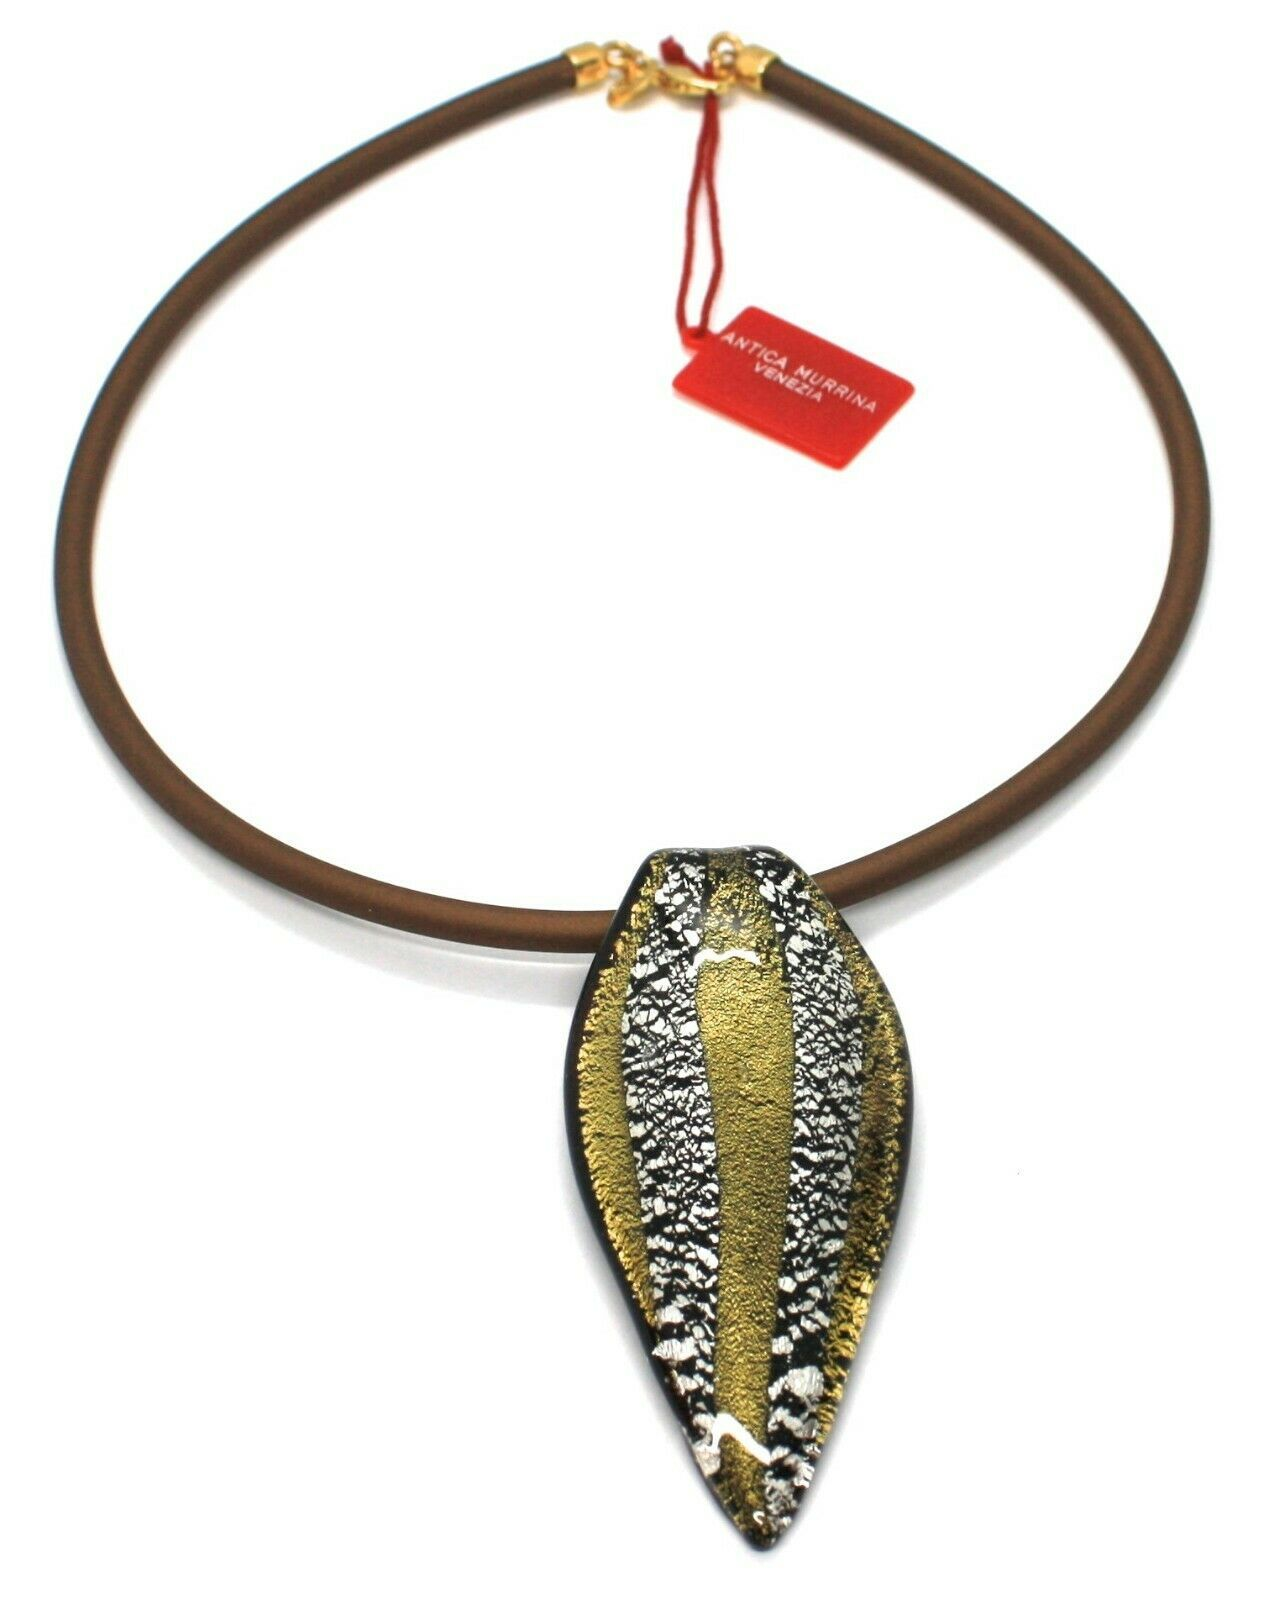 Necklace Antica Murrina Venezia,CO141A15,Stripes,Feather Pendant,Murano